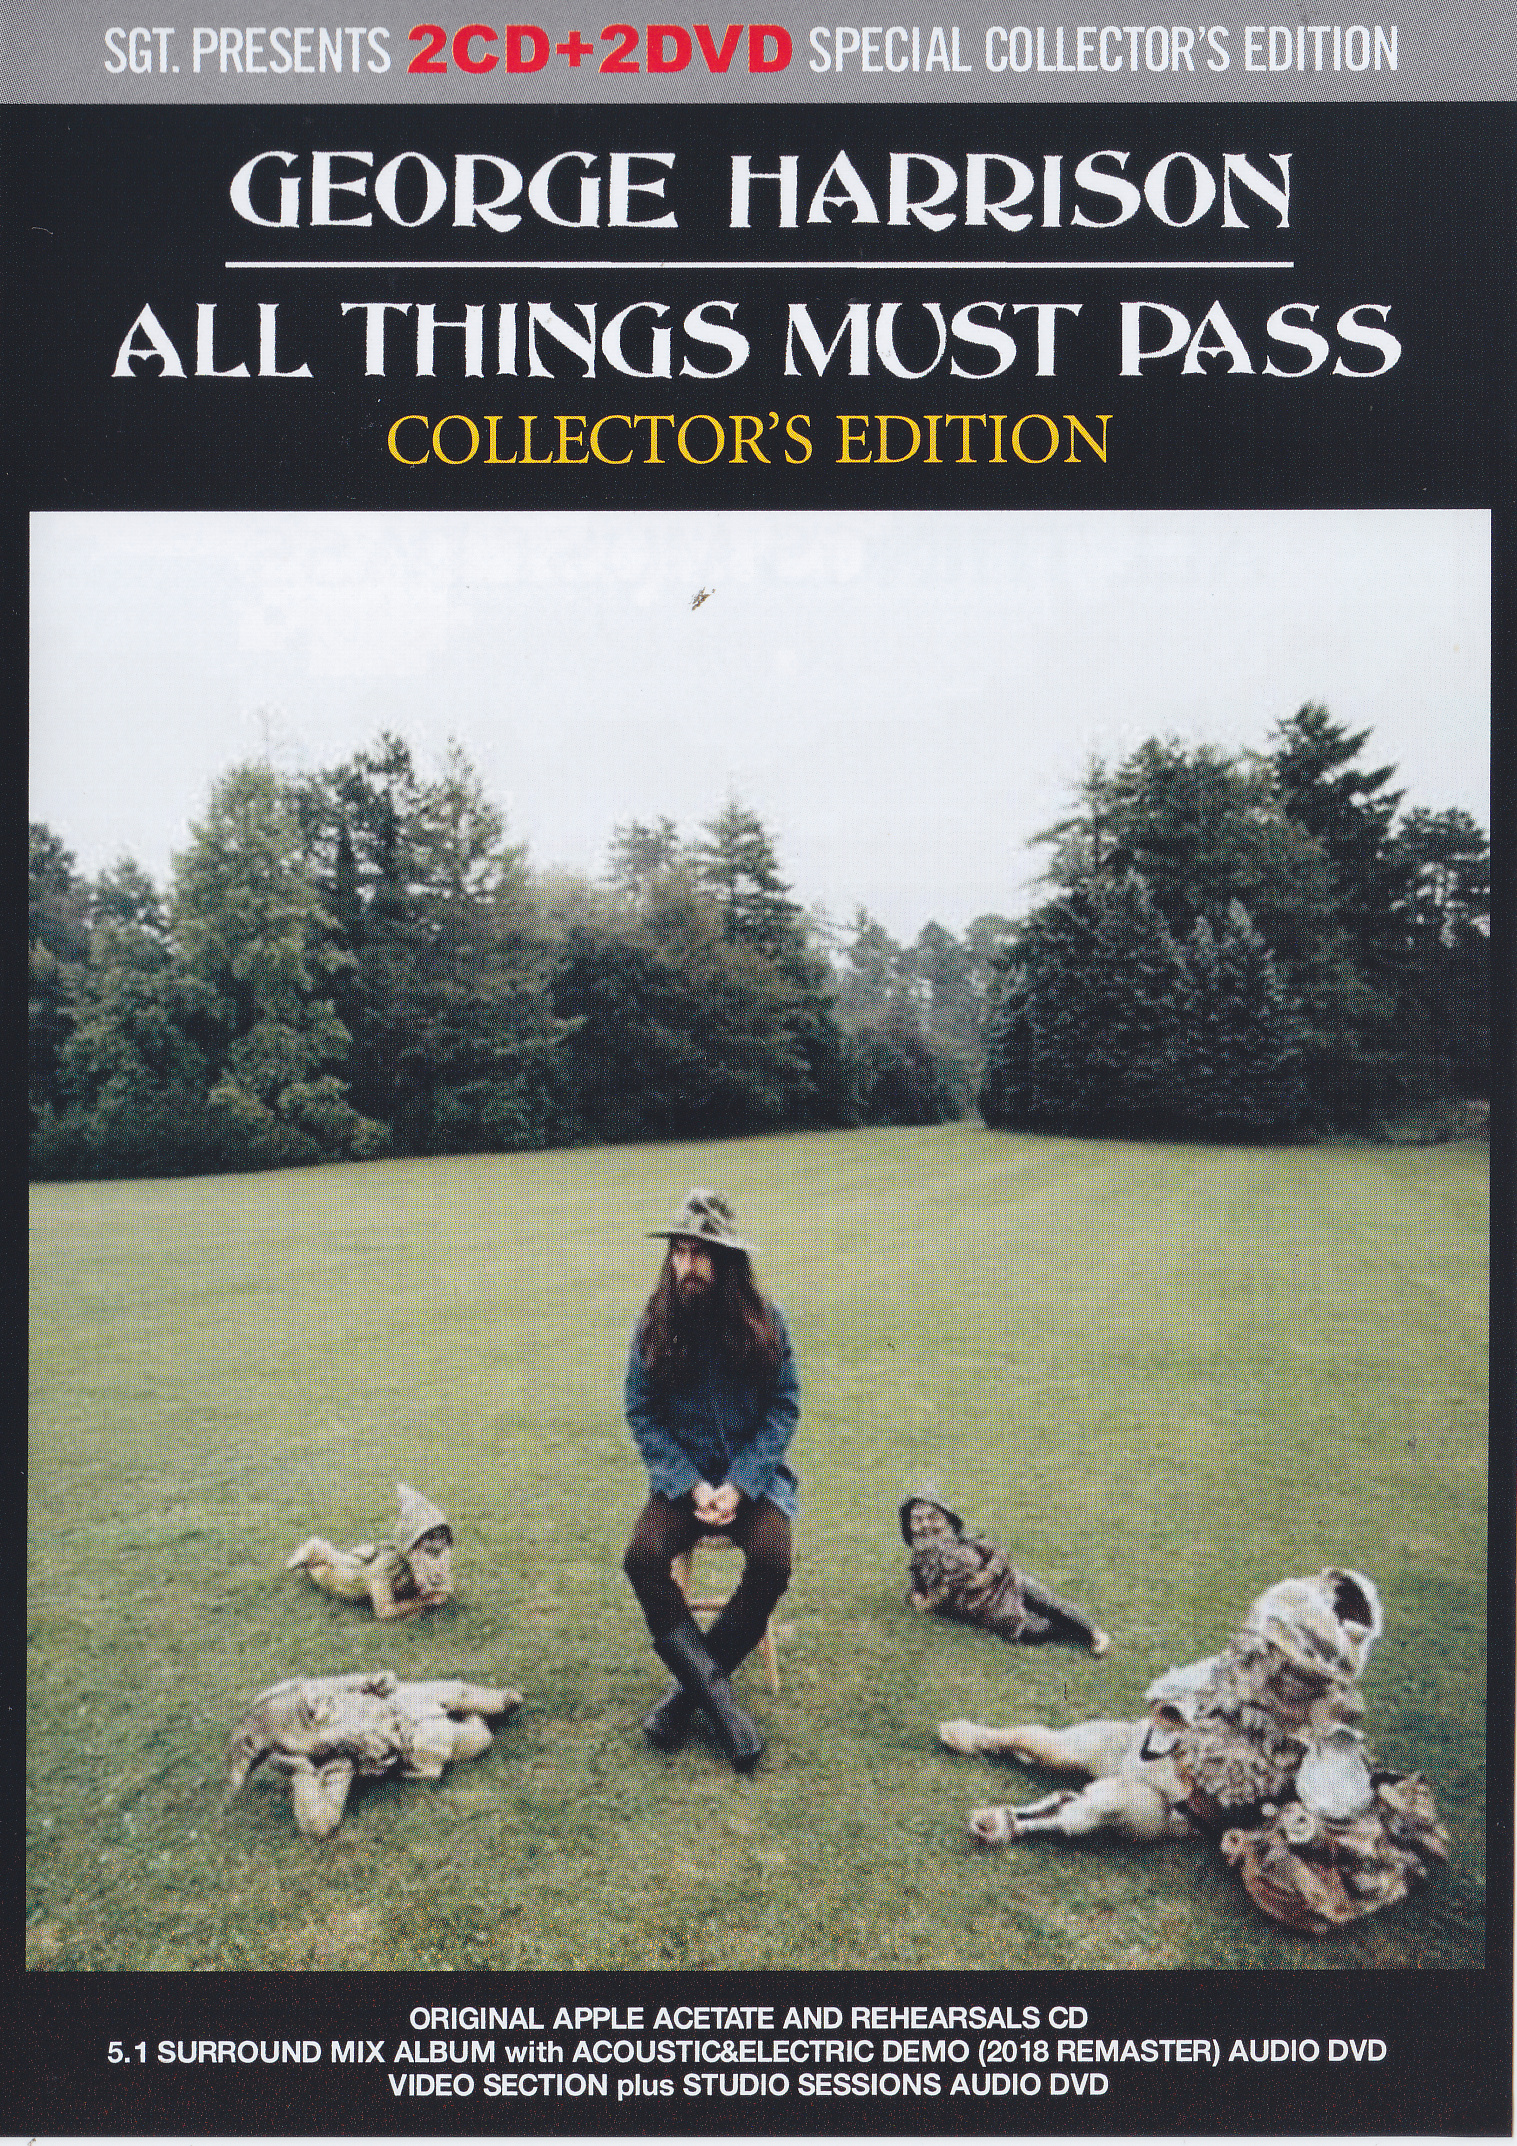 George Harrison All Things Must Pass Collectors Edition 2CD 2DVD